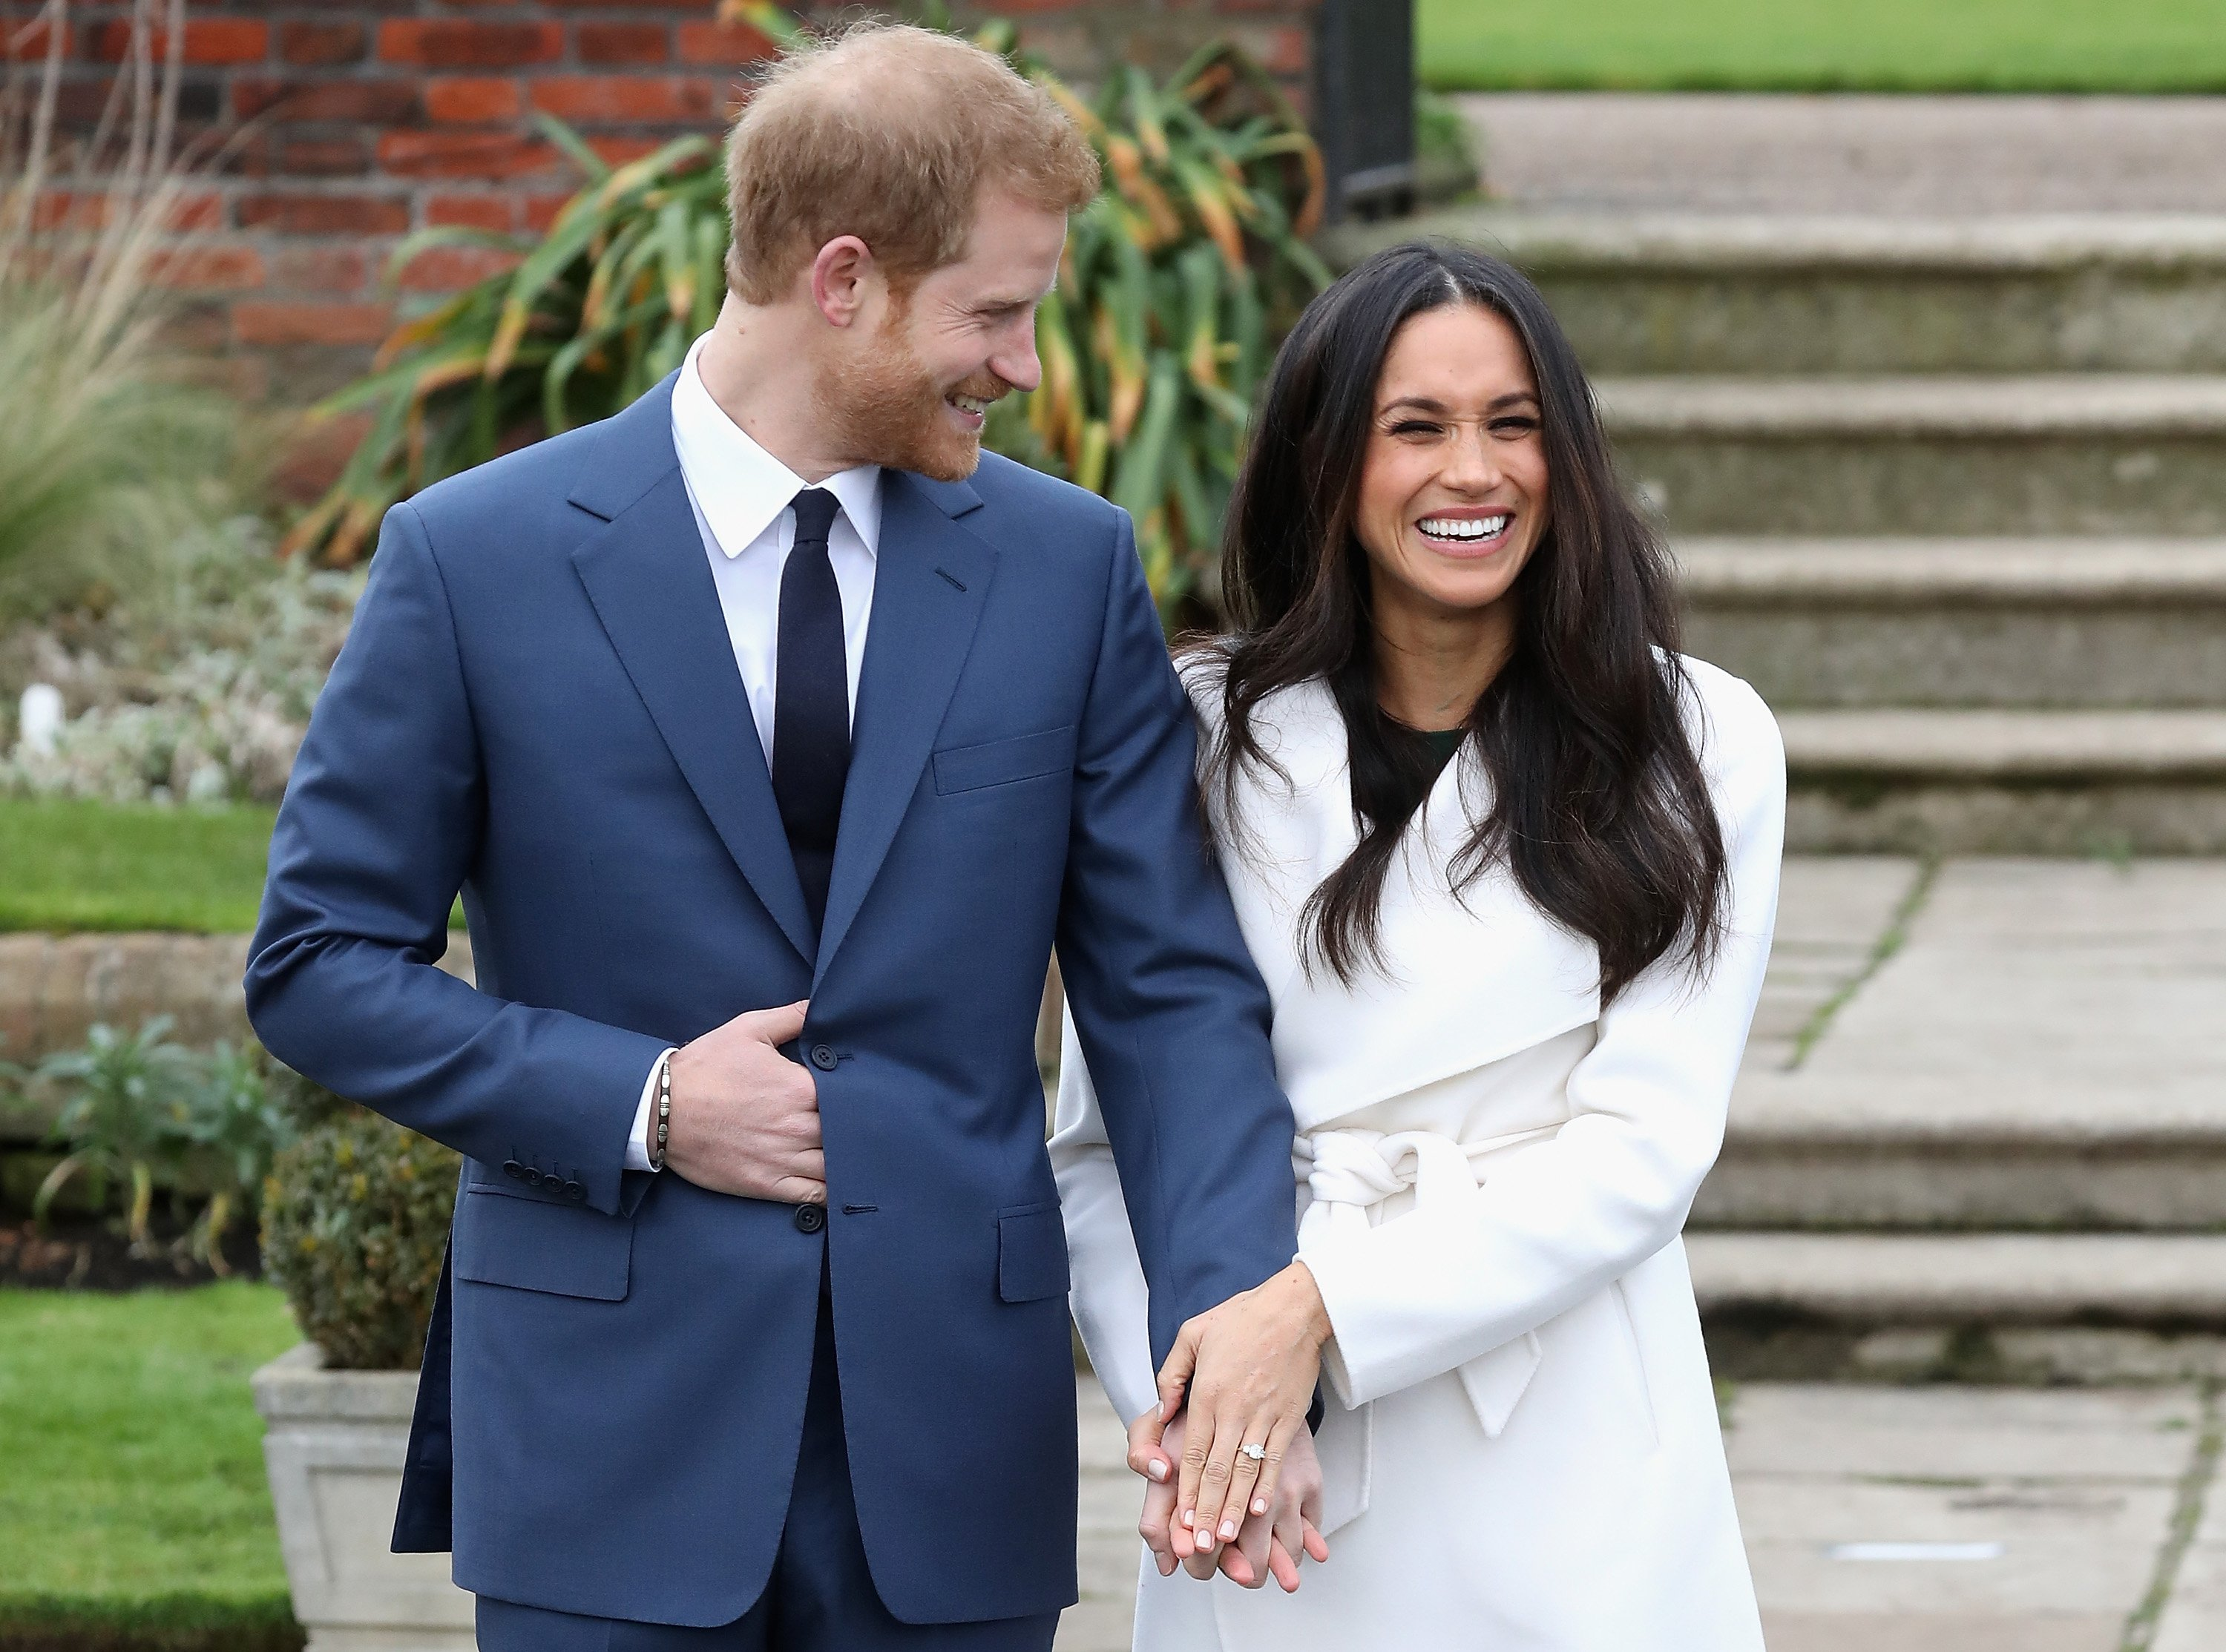 bac48323932506 6 Strict Rules the Royal Family (and Now Meghan Markle) Must Follow ...